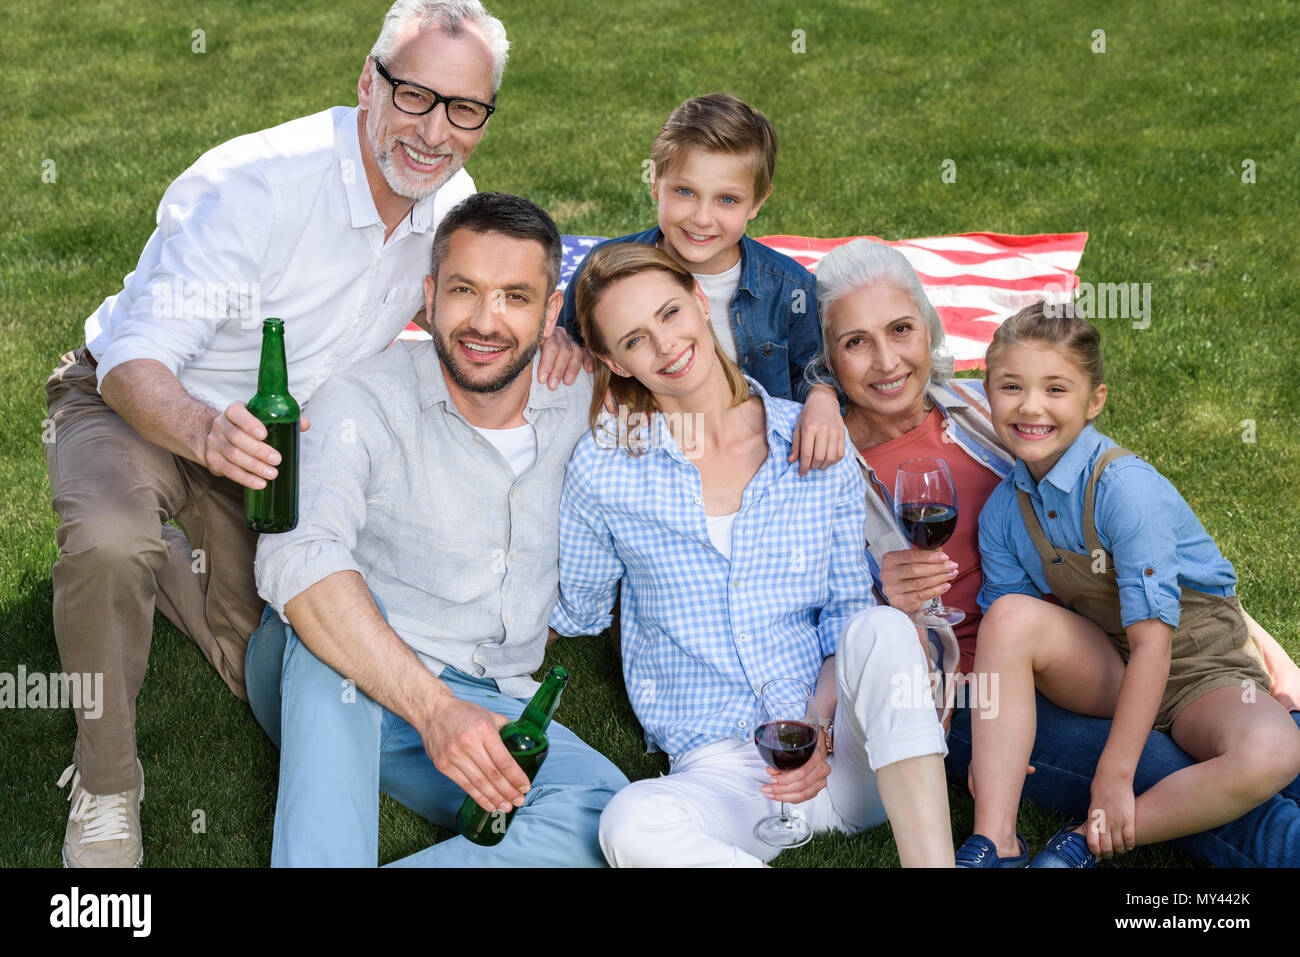 Happy family of three generations sitting together on green lawn and smiling at camera - Stock Image